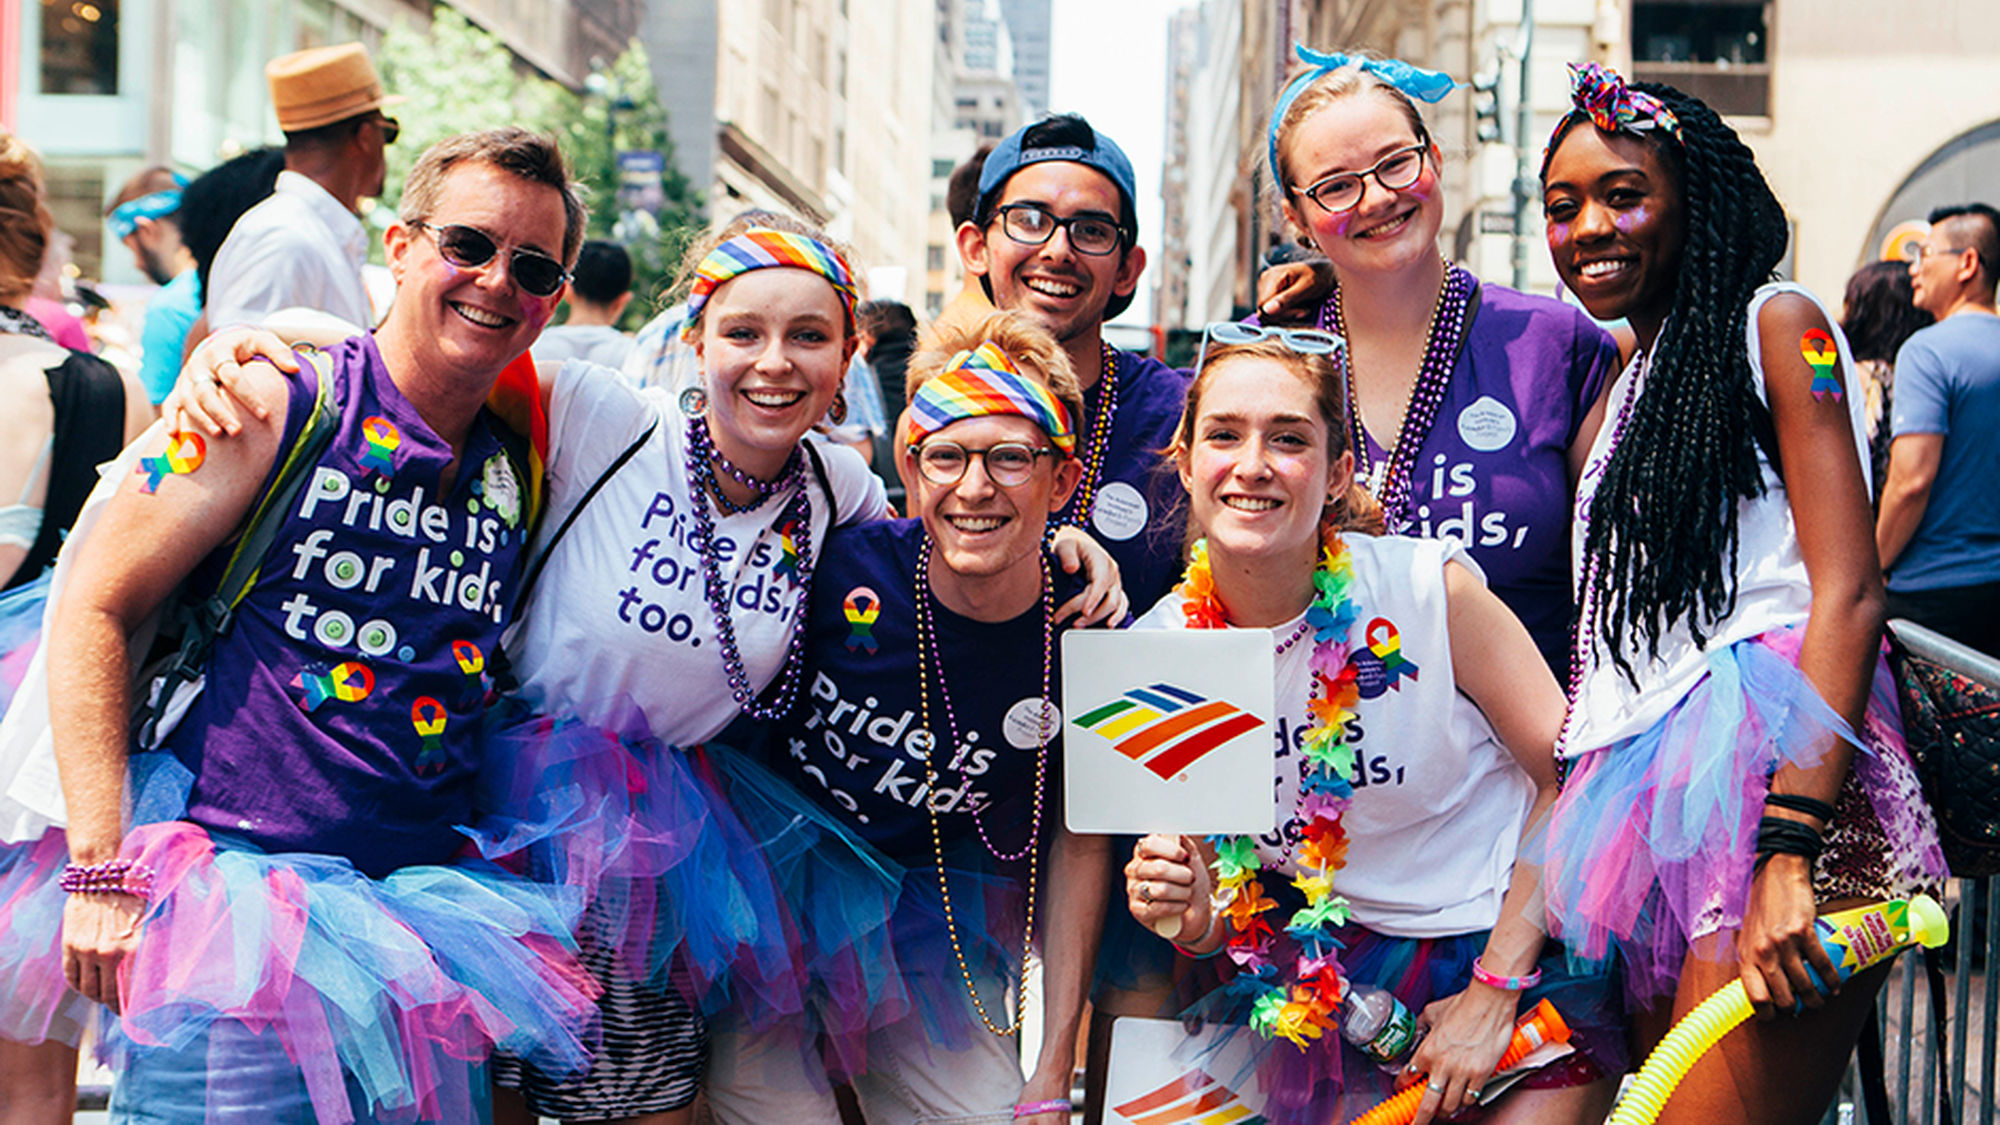 2016 26 16 NYC Pride Parade Gender and Family Project JPEGS 052